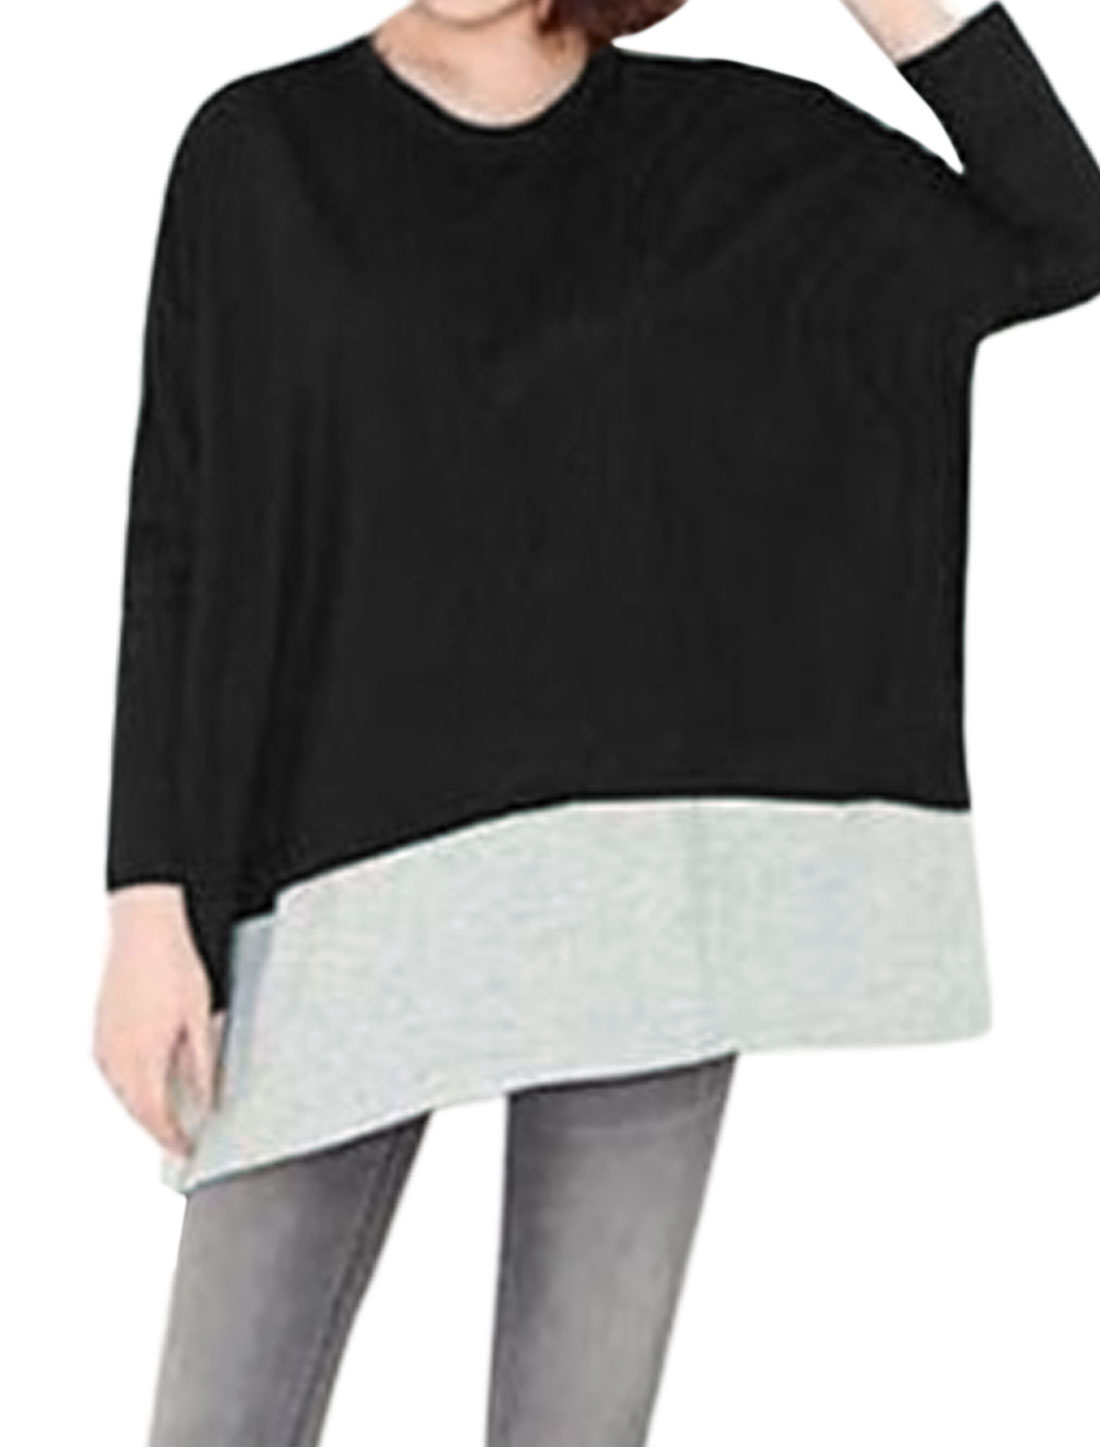 Women Paneled Color Block Batwing Loose Tunic Top Black S